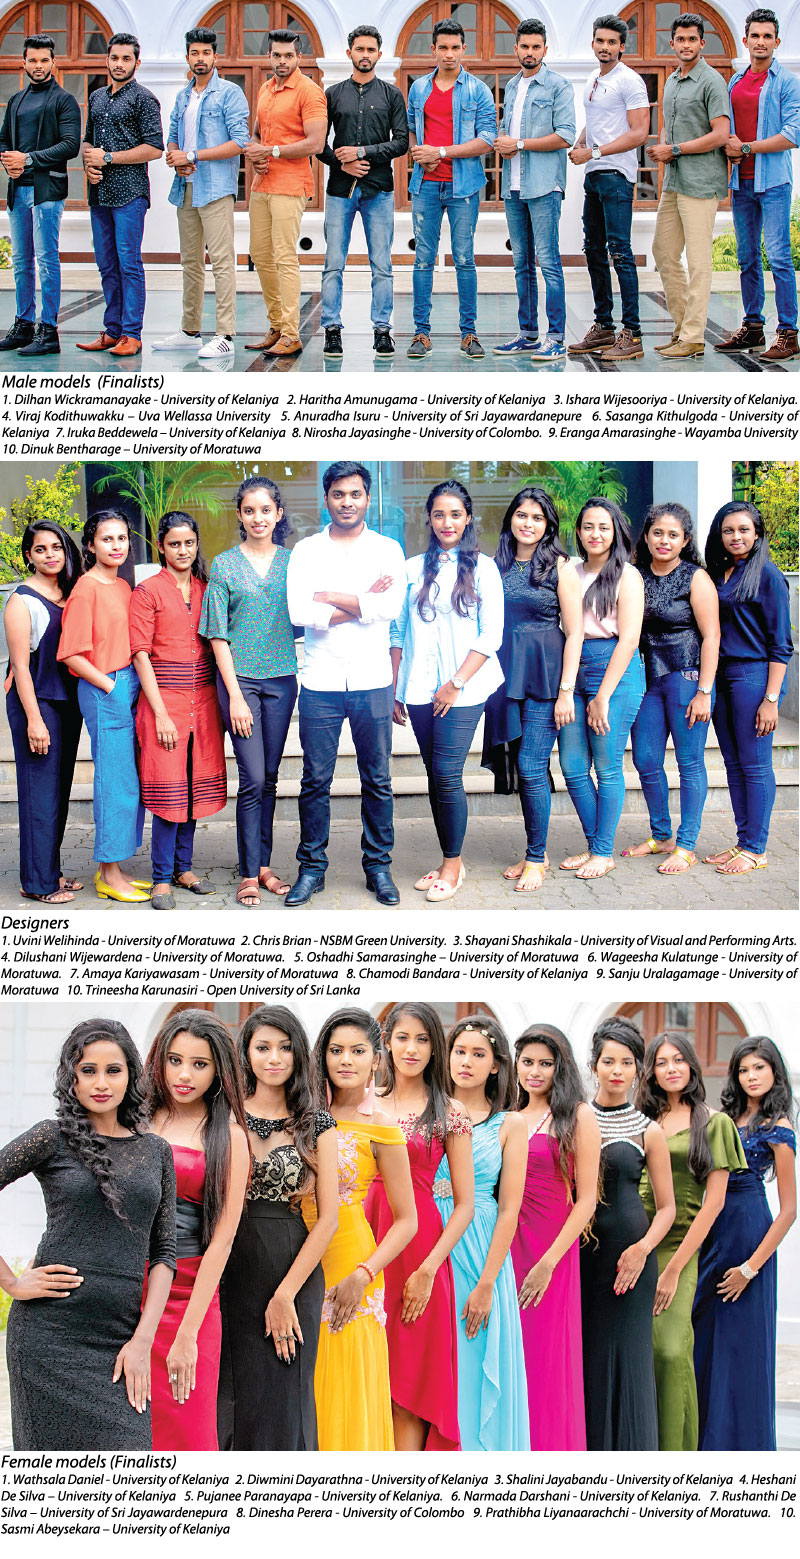 Inter University Fashion Show By The University Of Kelaniya Sunday Observer